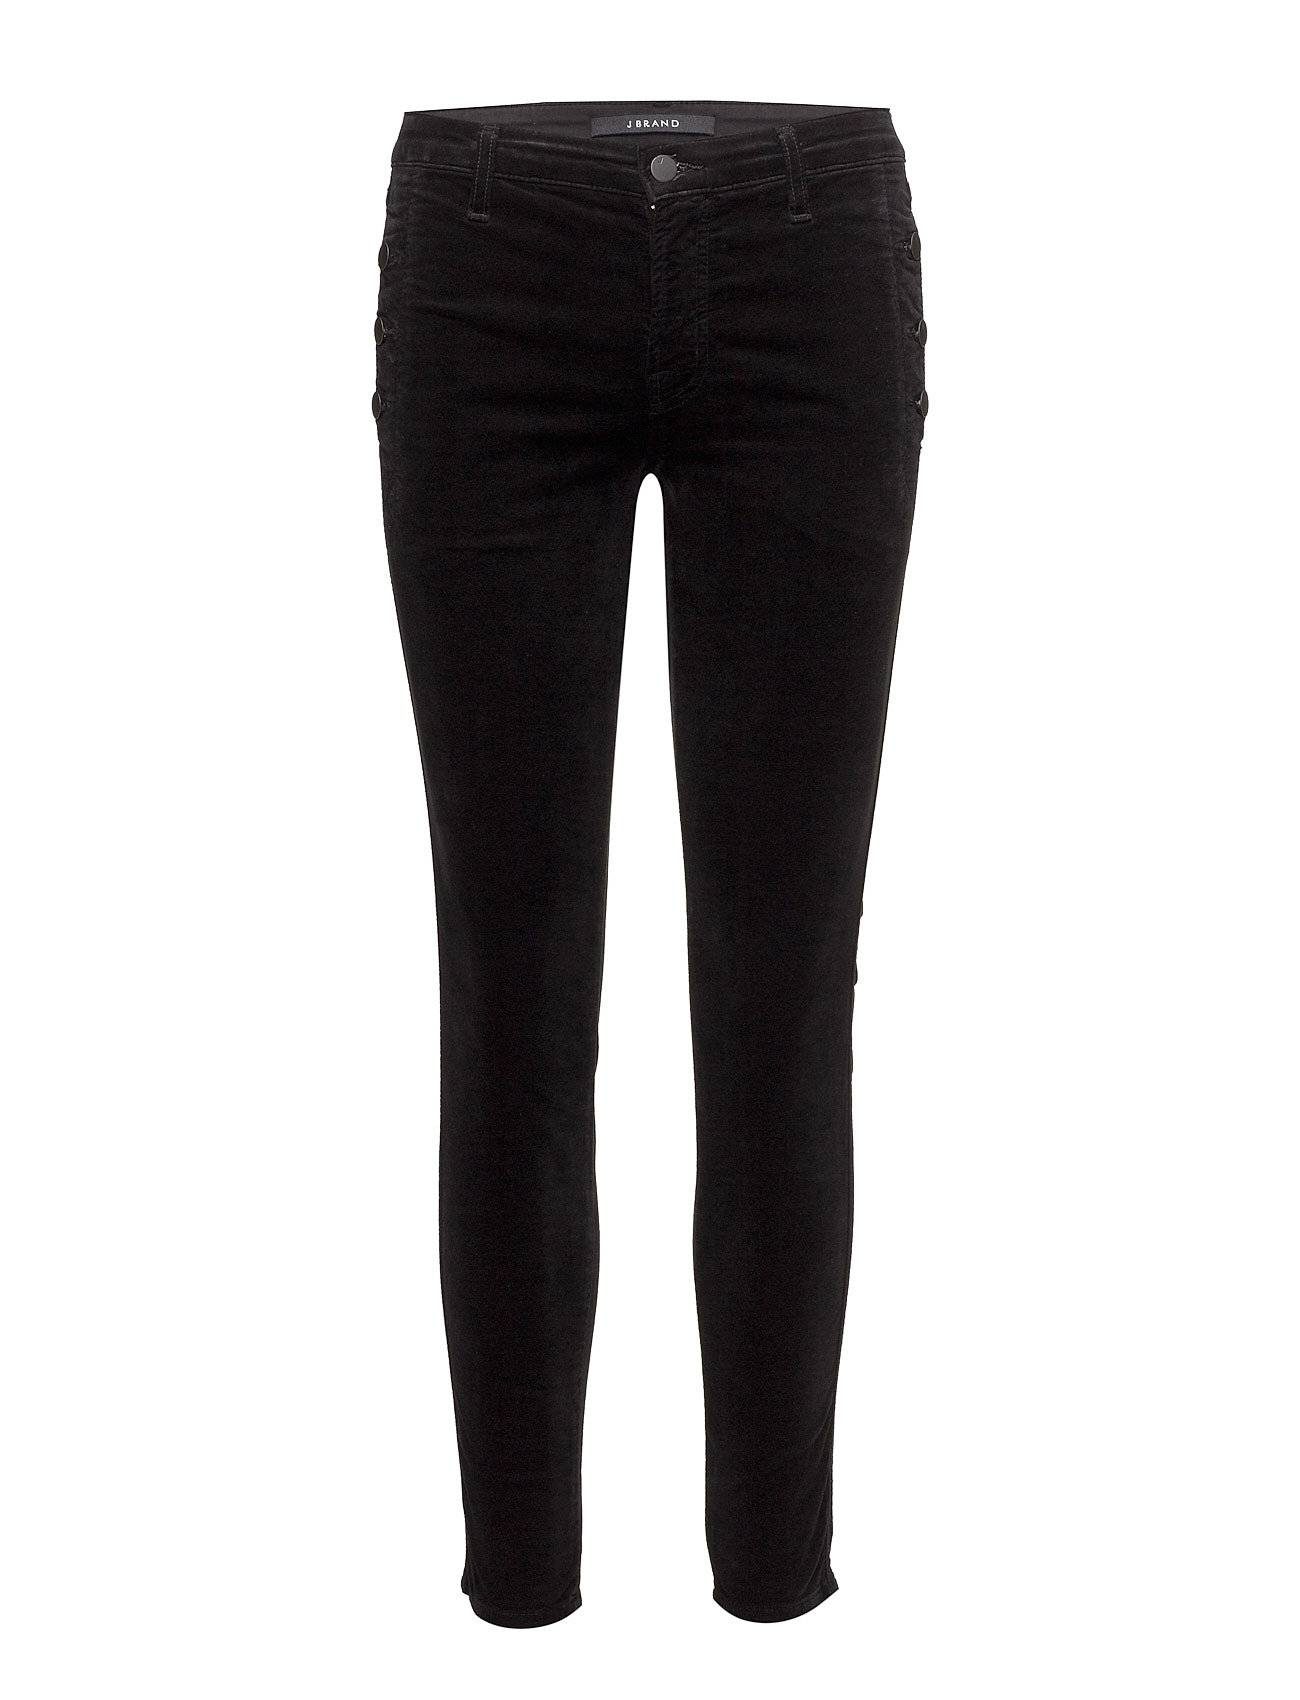 J brand 8580t635 Zion Mid Rise Skinny W/Button Pockets